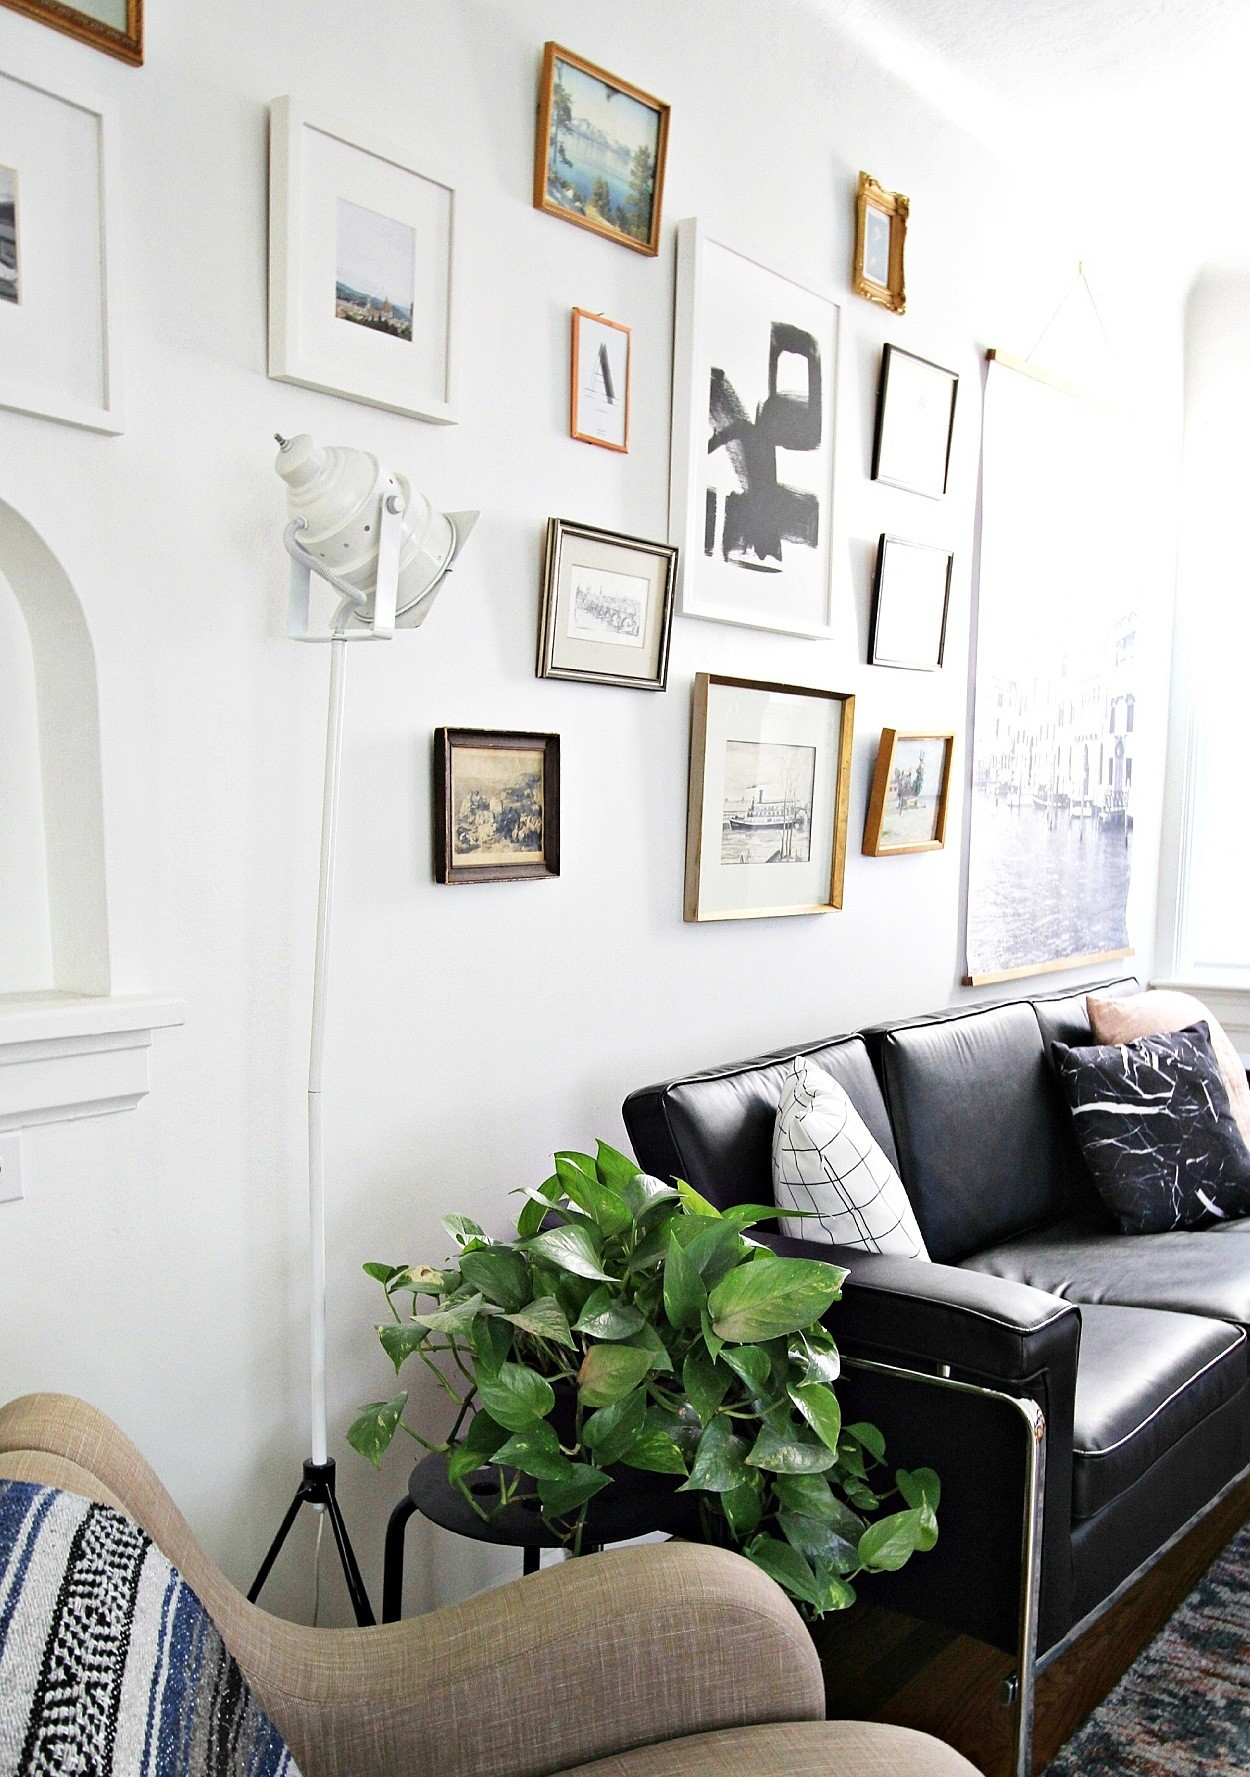 Living Room Decor Ideas with Big Impact for Small